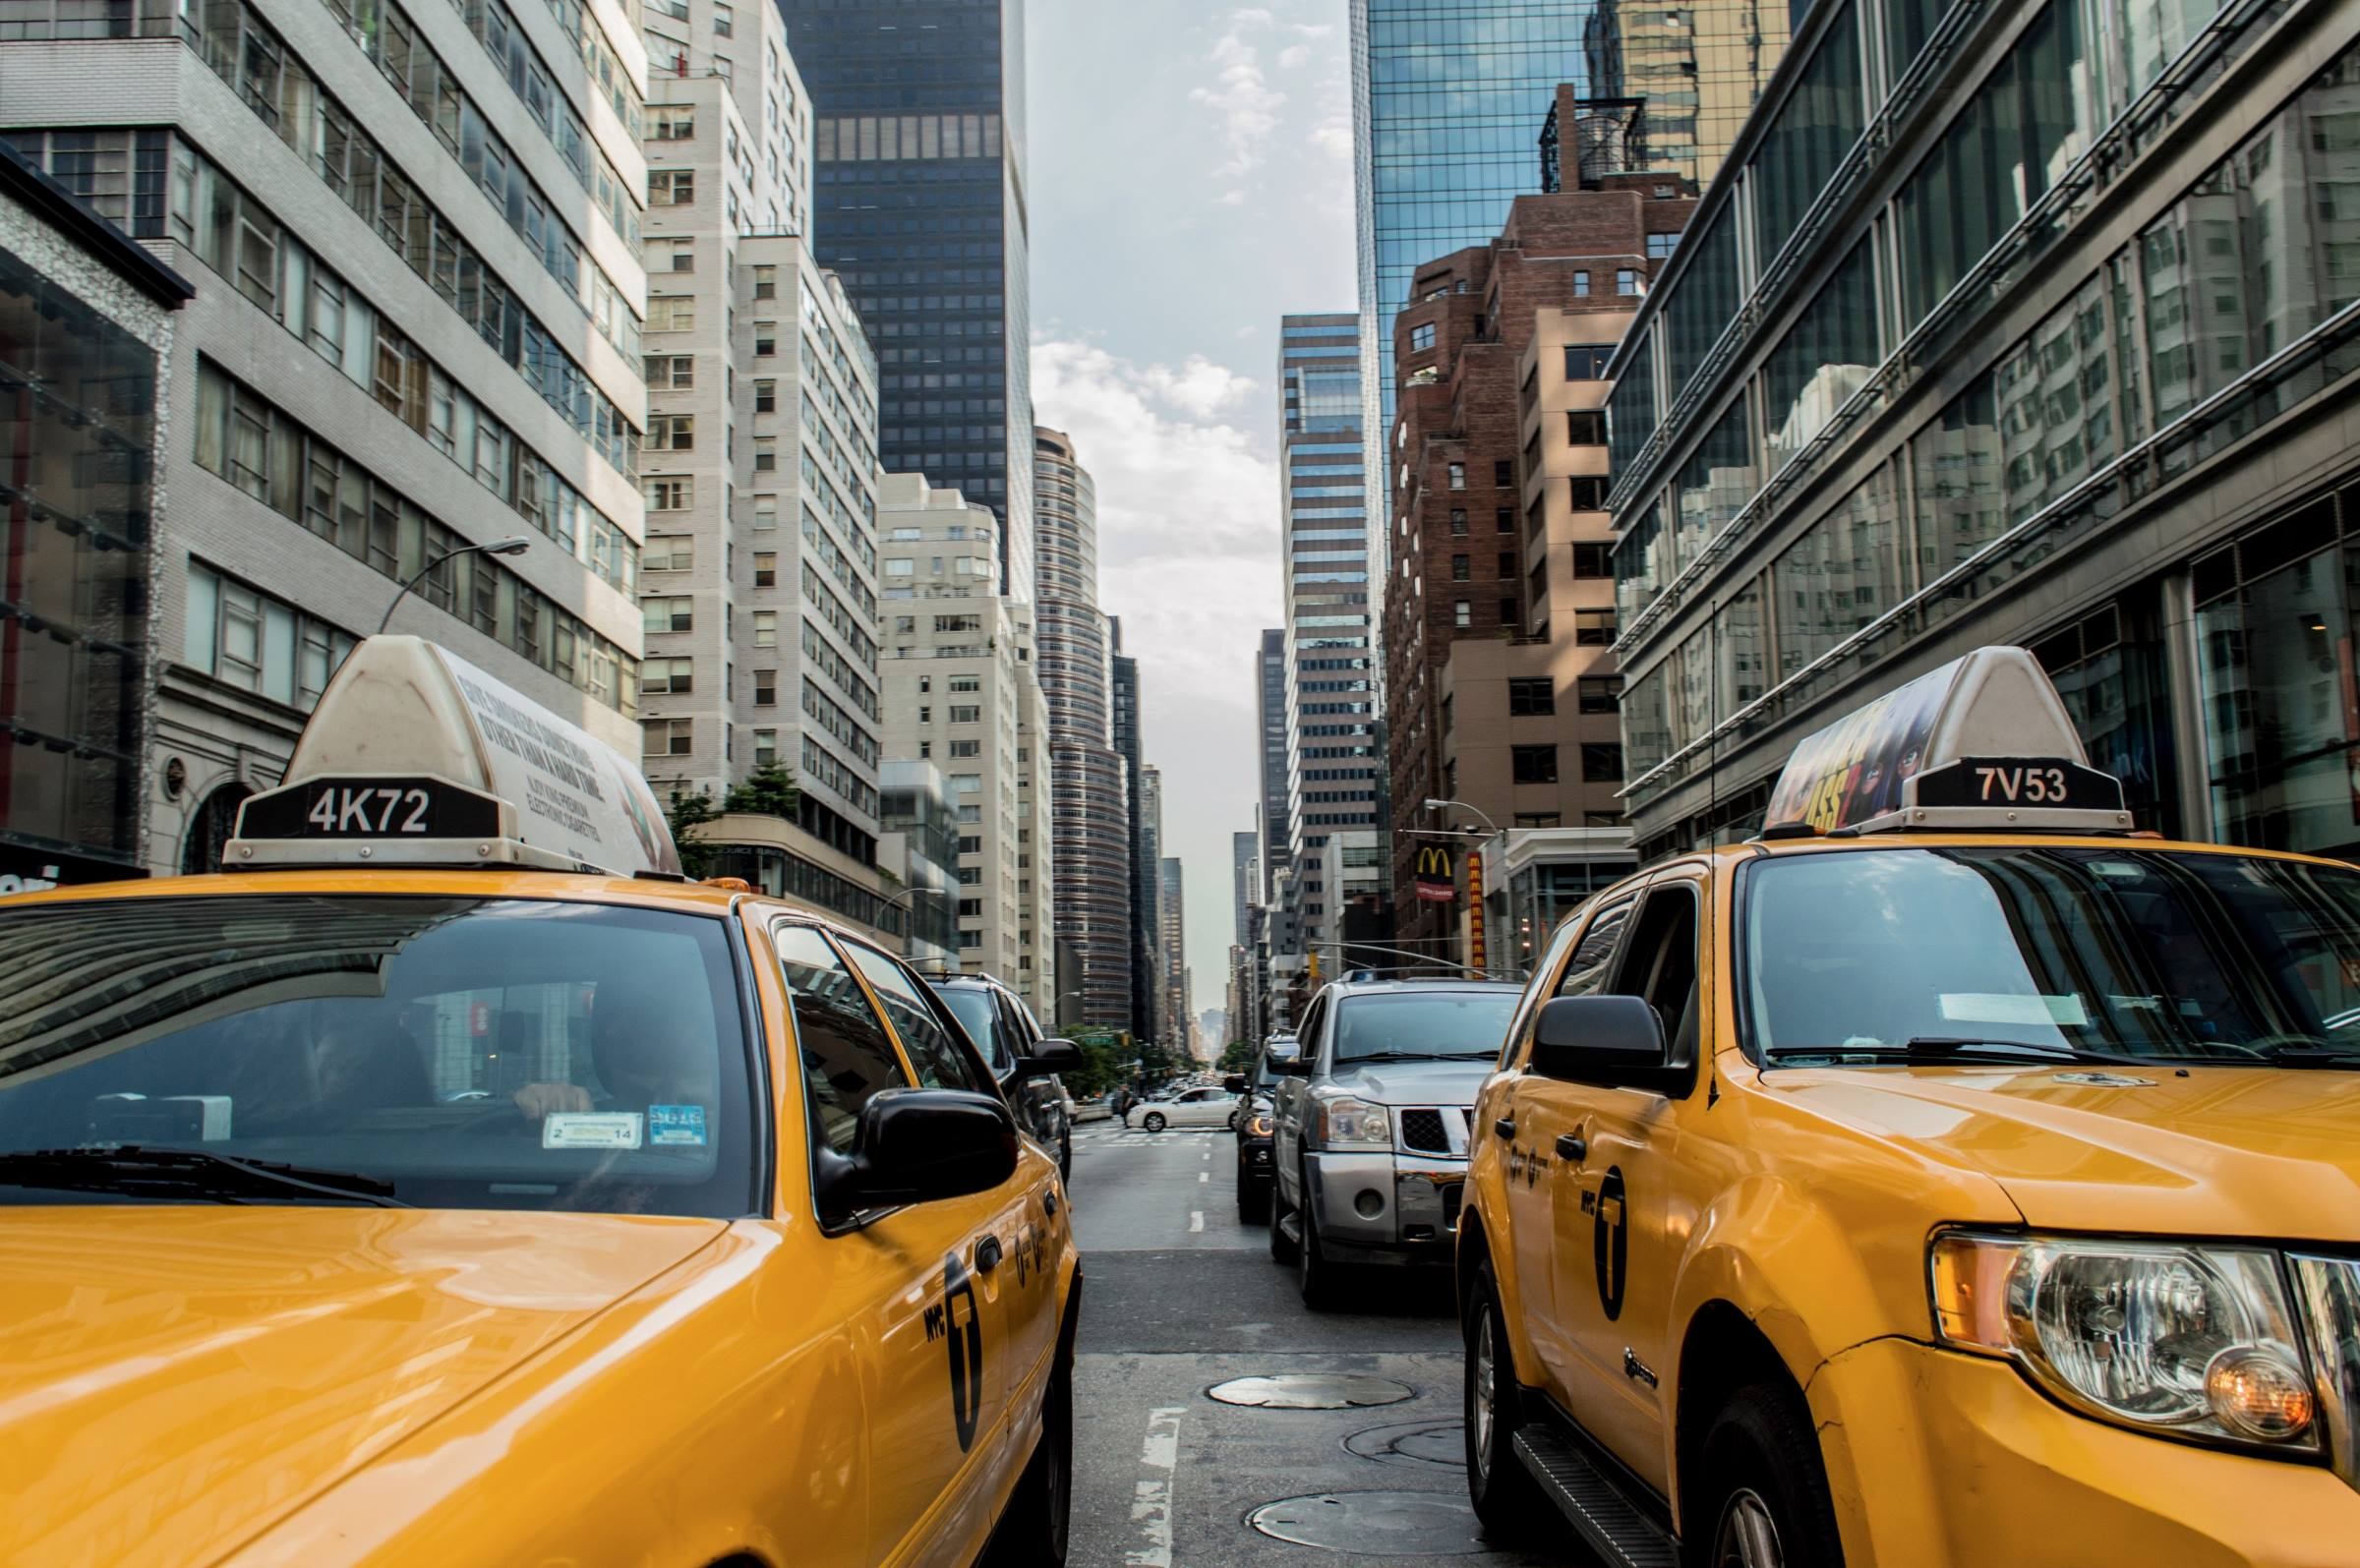 new york yellow taxi cabs city